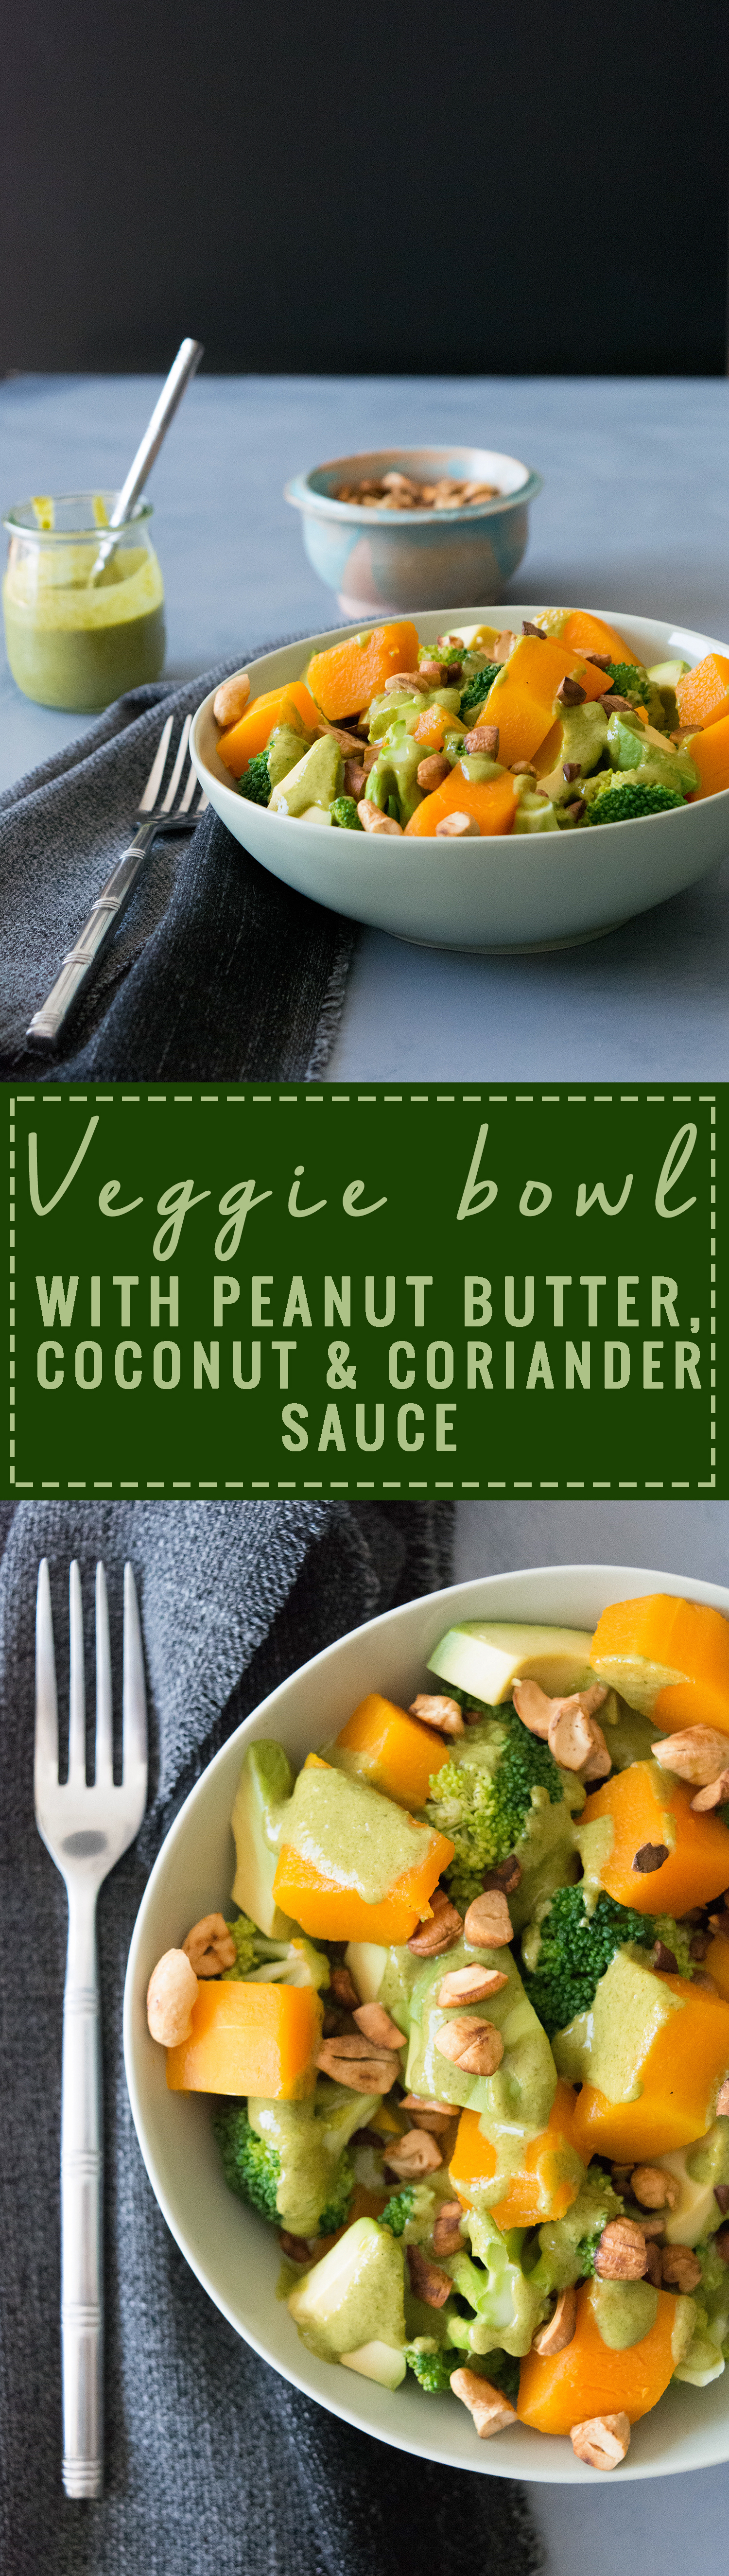 Veggie Bowl with Peanut Butter, Coconut & Coriander Sauce